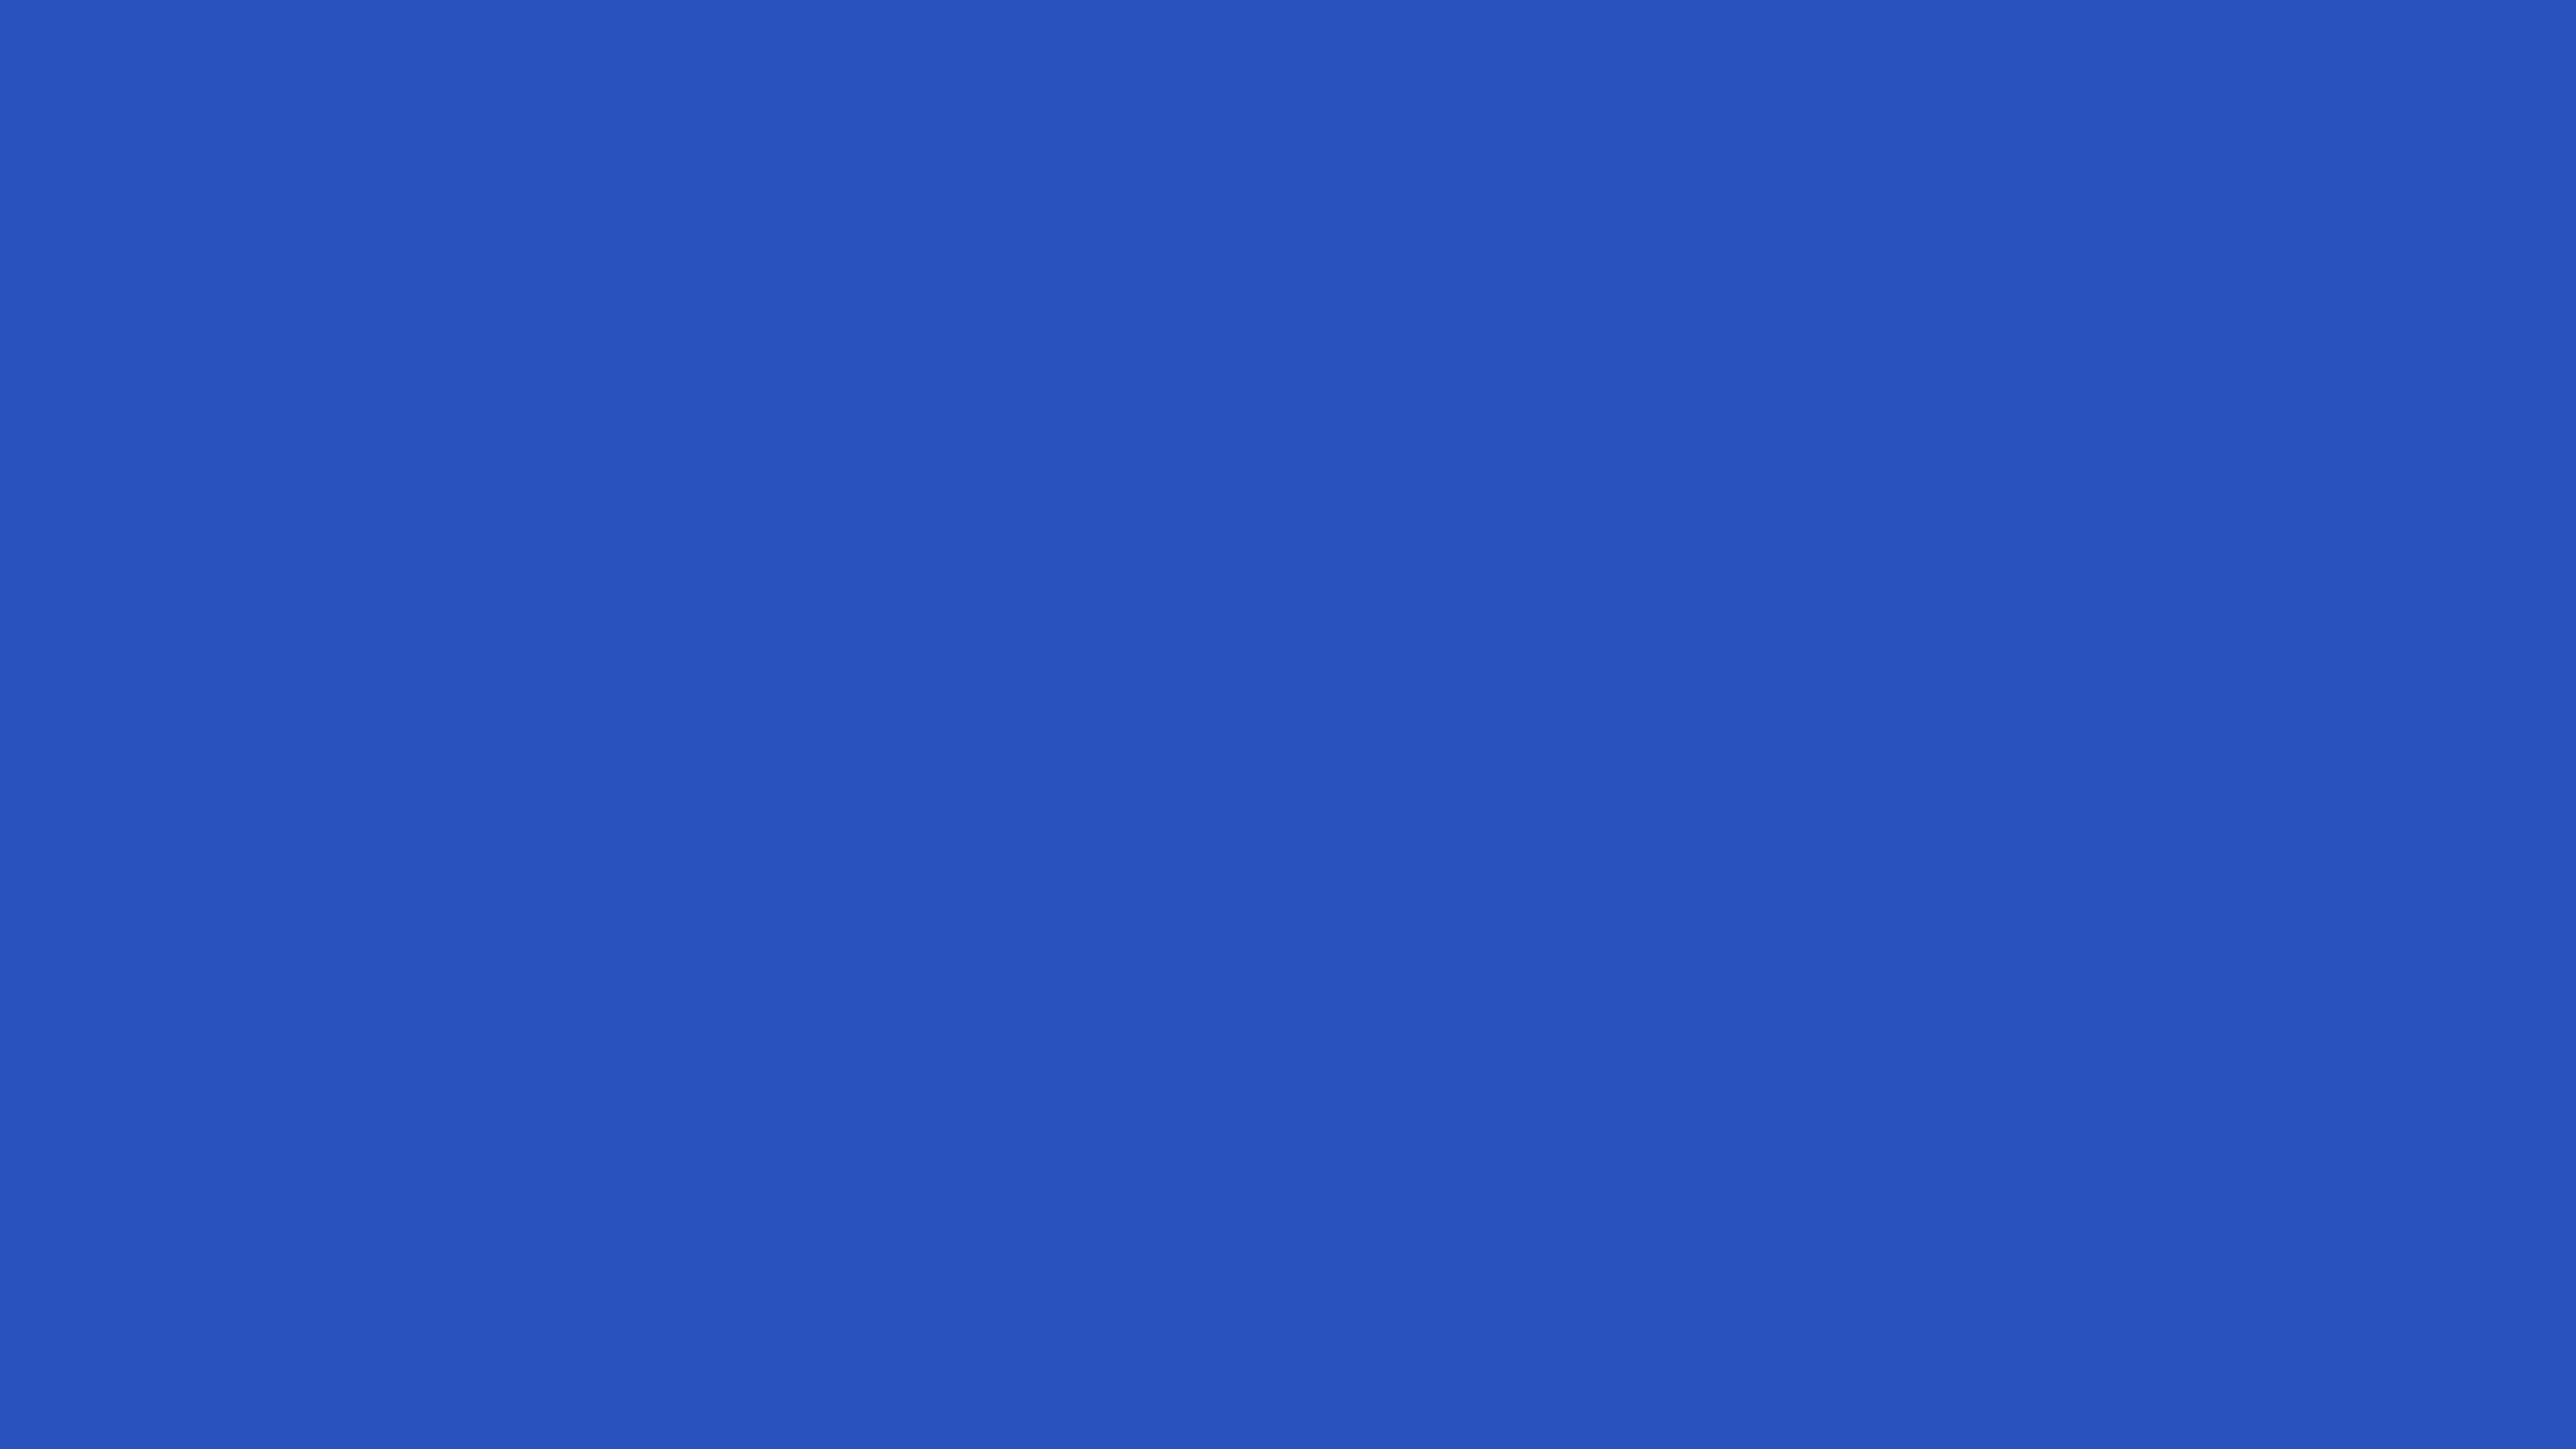 3840x2160 Cerulean Blue Solid Color Background